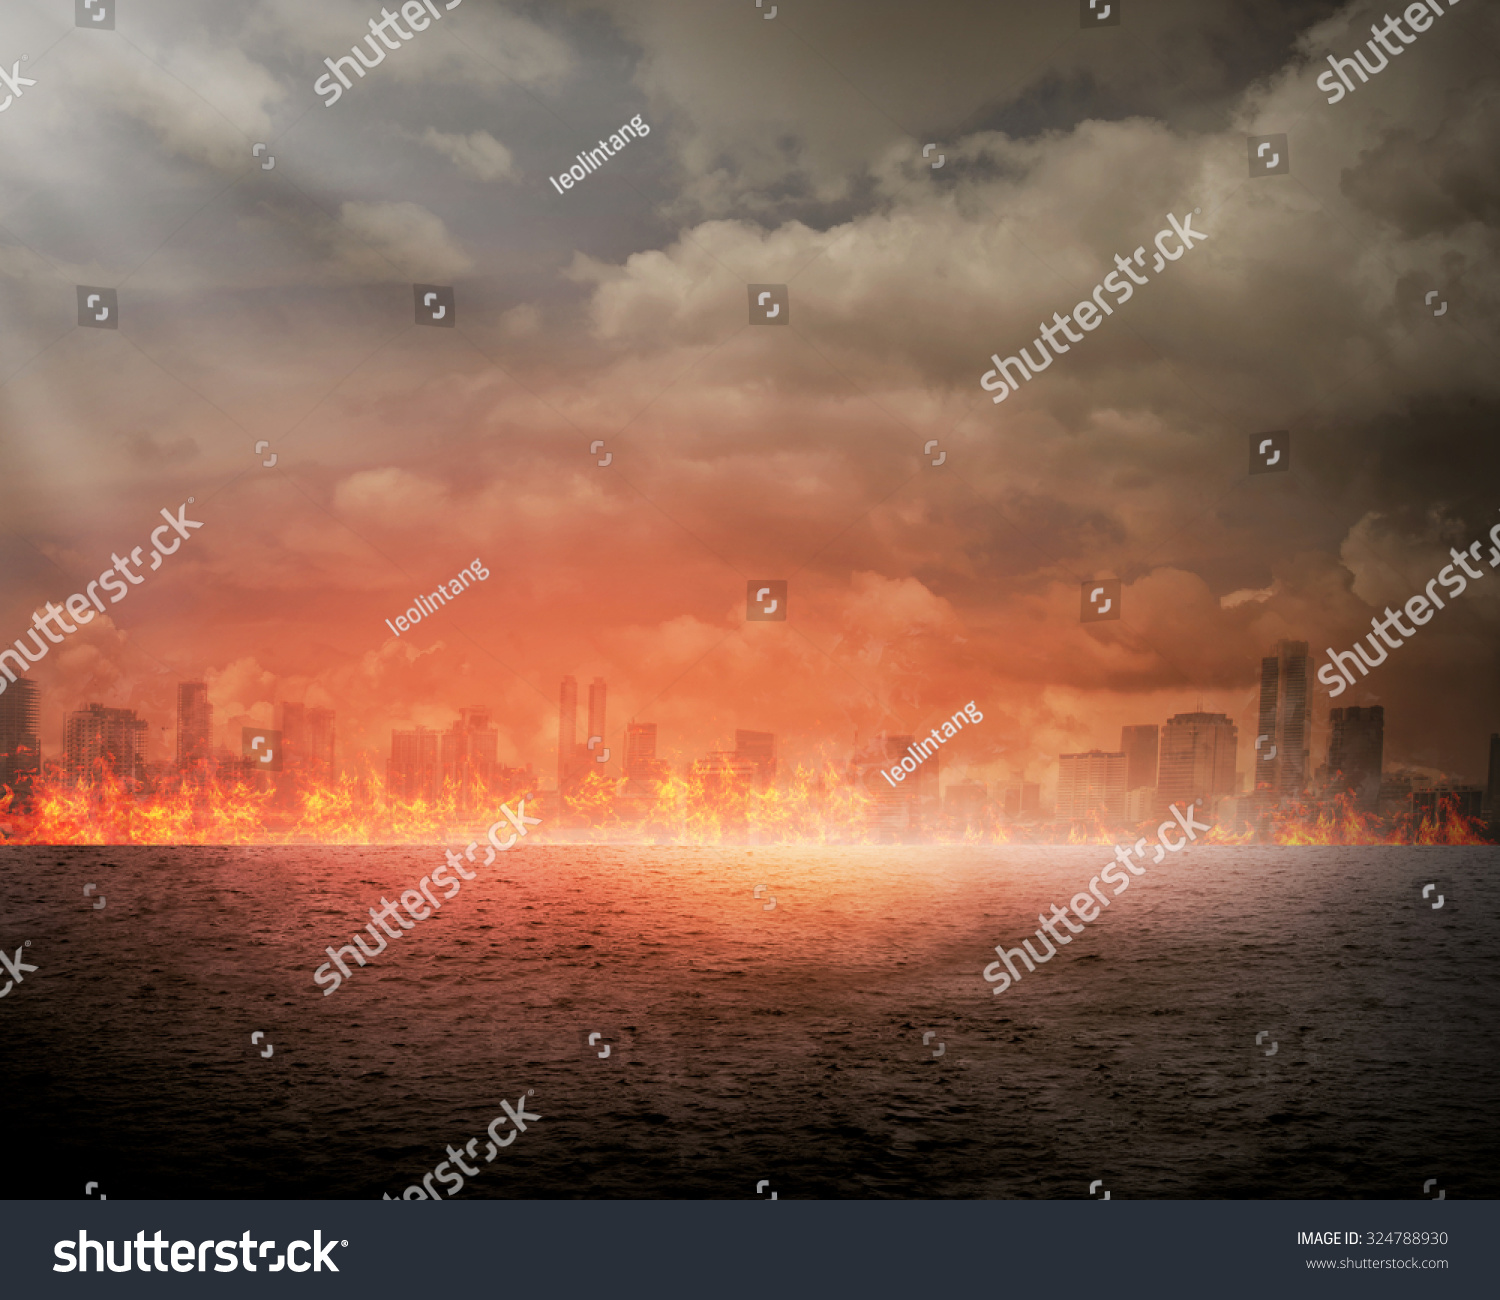 Burning city Disaster concept You can put your design on the city